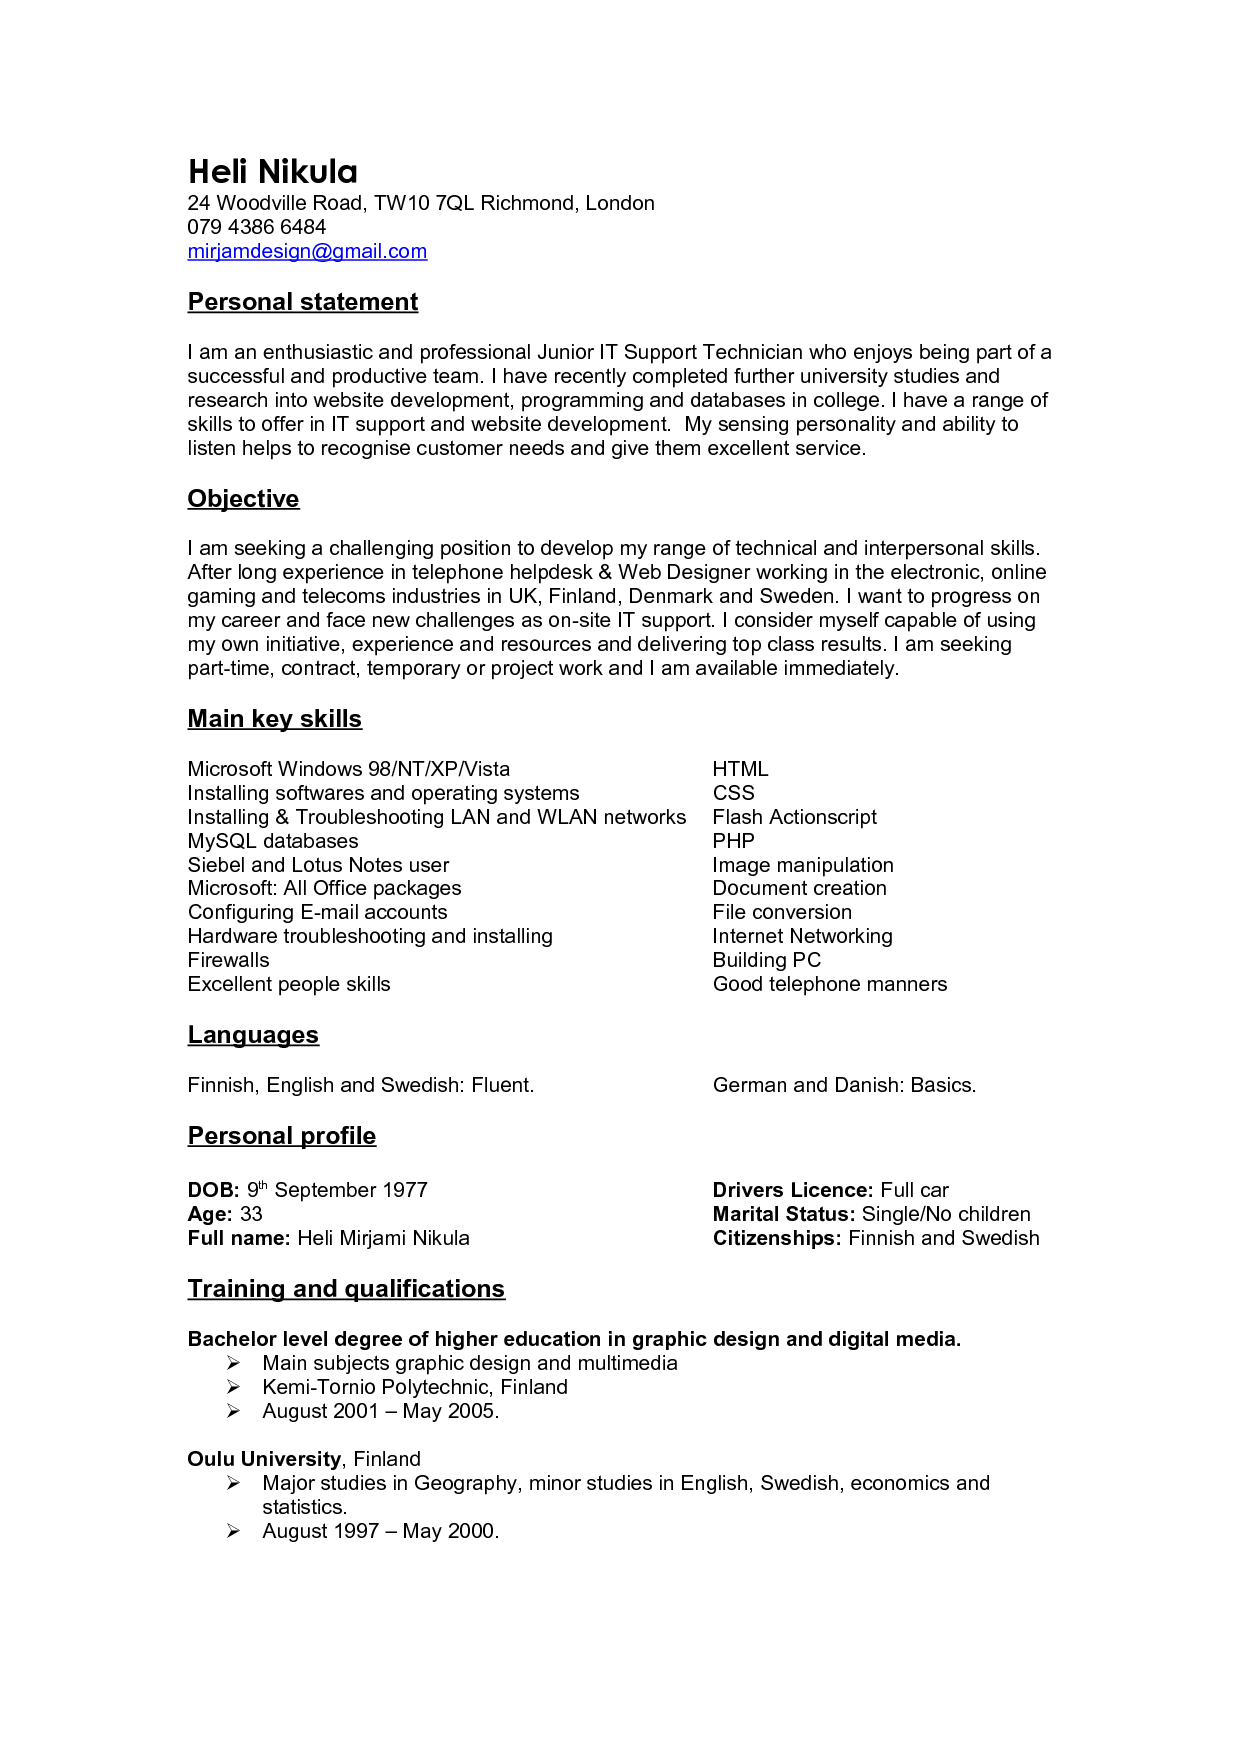 Charming Personal Branding Statement Resume Examples For Personal Summary Resume